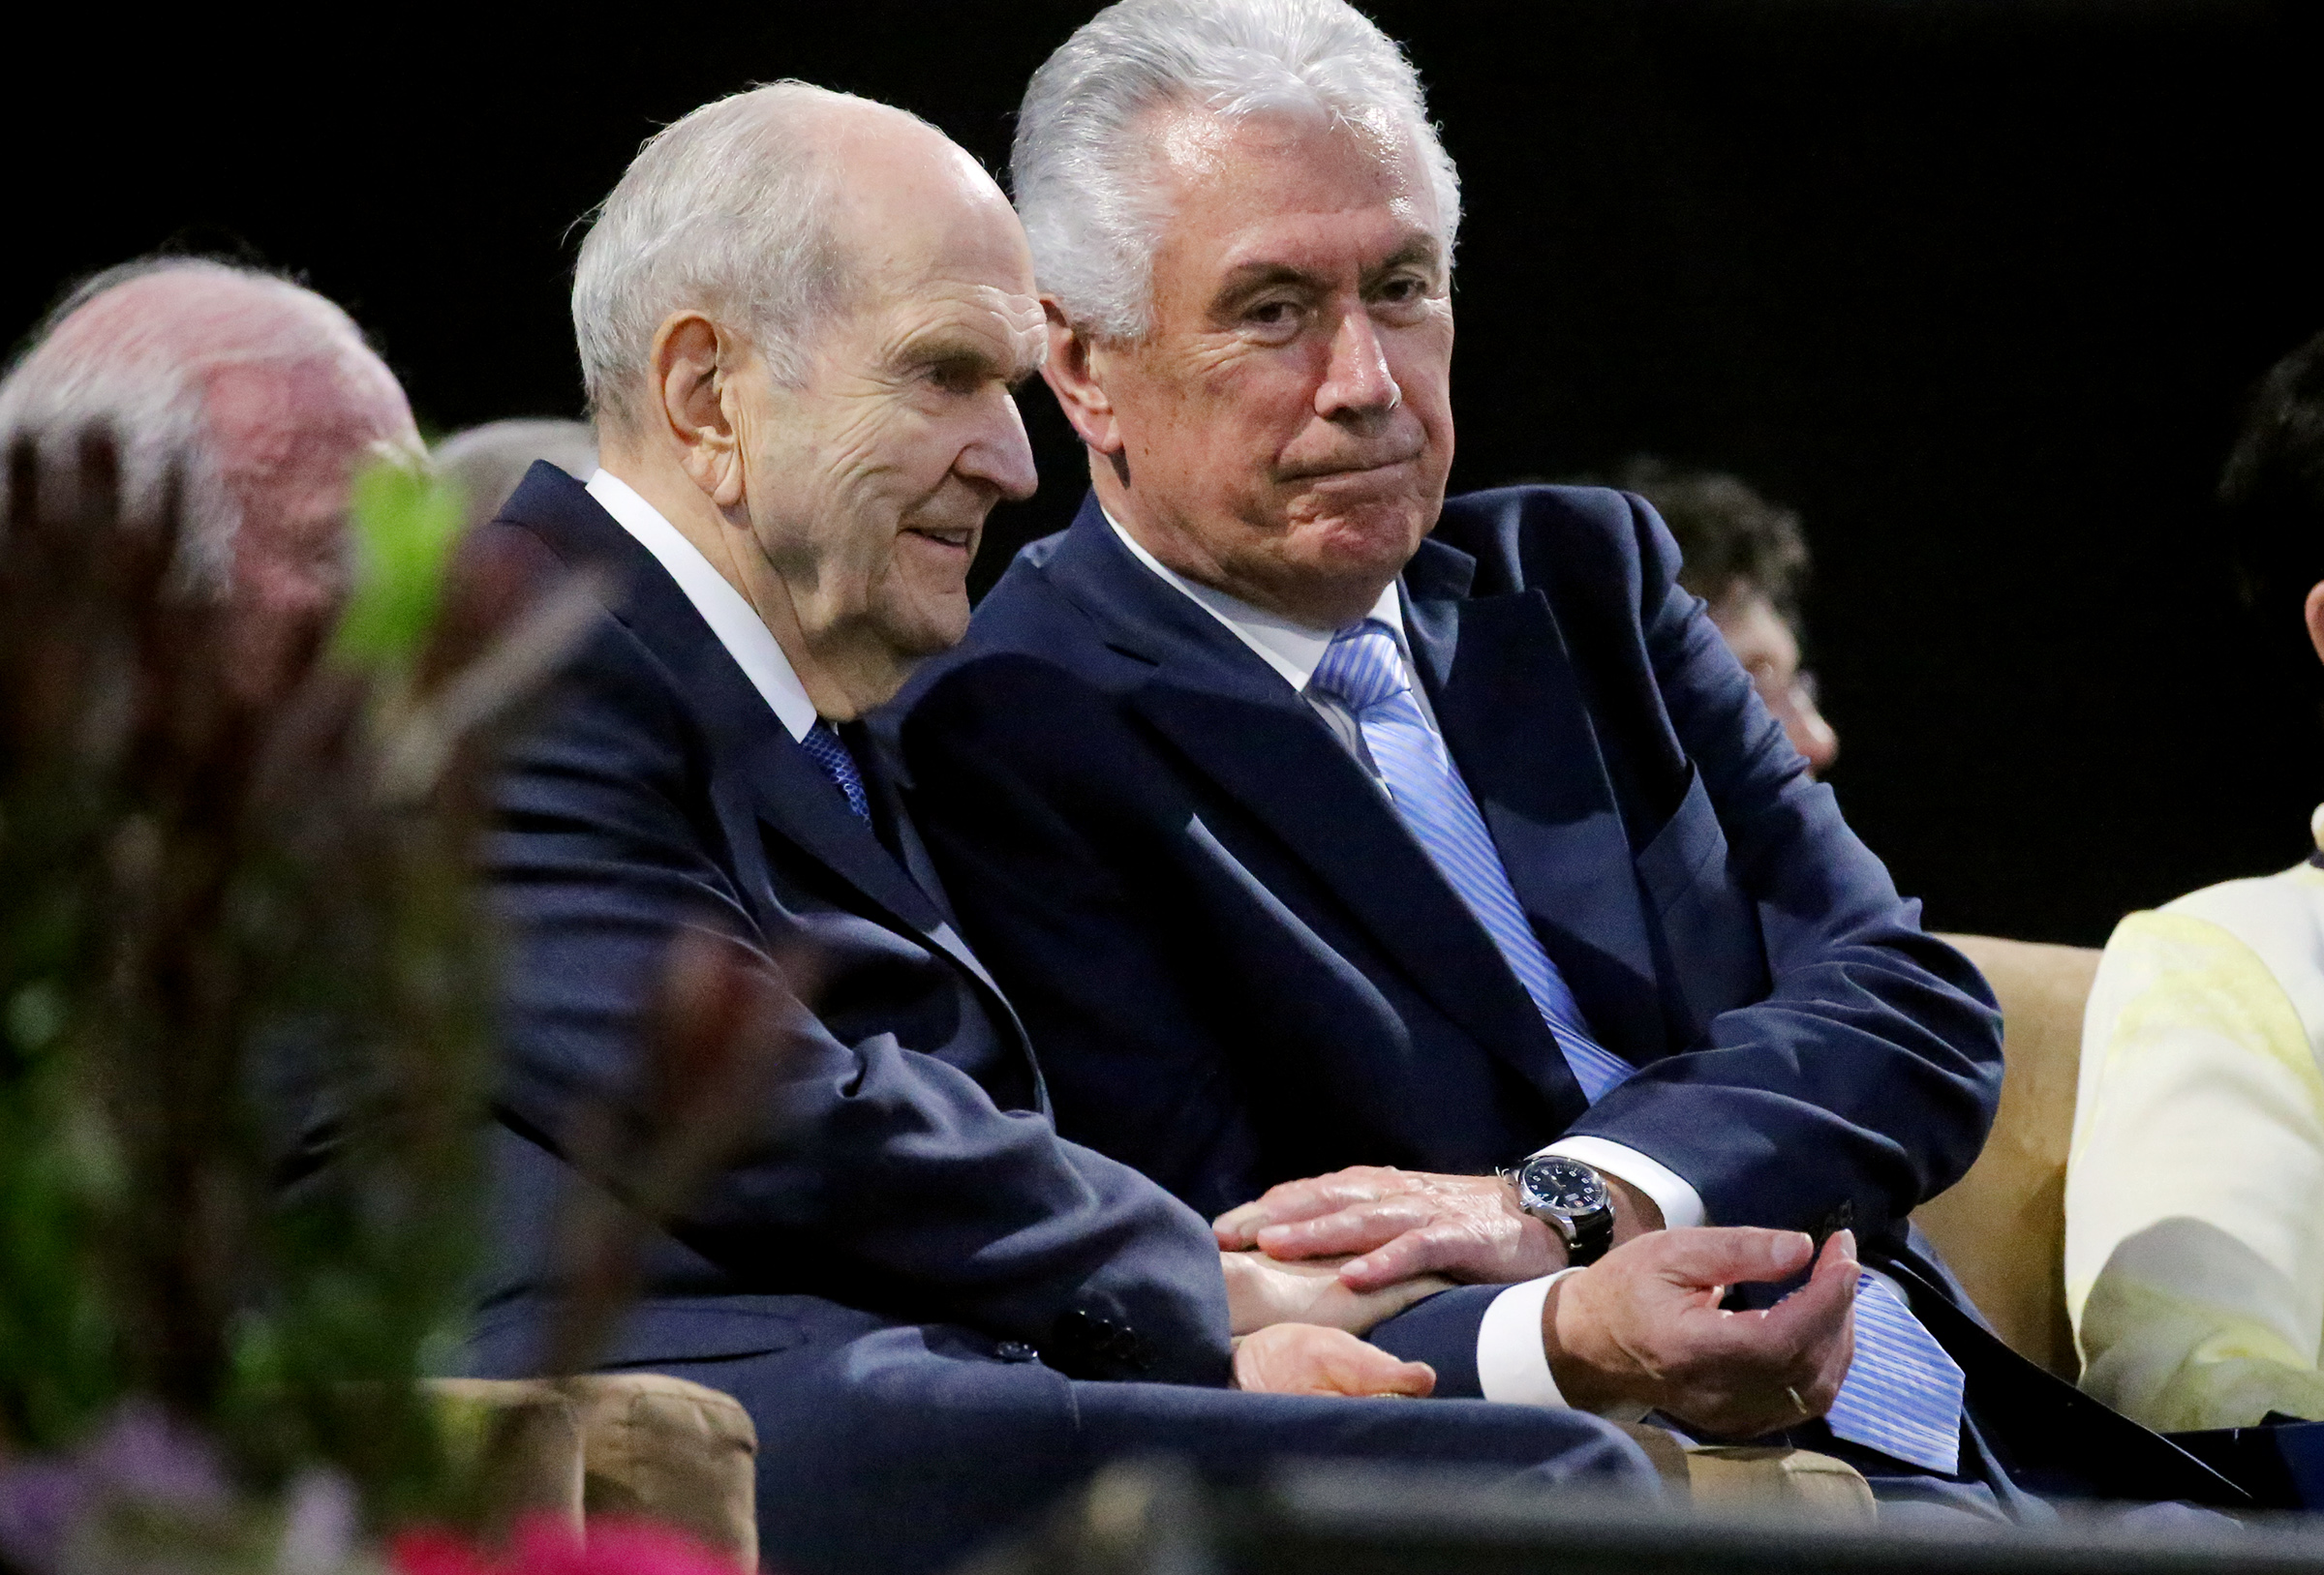 President Russell M. Nelson and Elder Dieter F. Uchtdorf of the Quorum of the Twelve Apostles site side by side at the devotional in the Amway Center in Orlando, Florida, on Sunday, June 9, 2019.